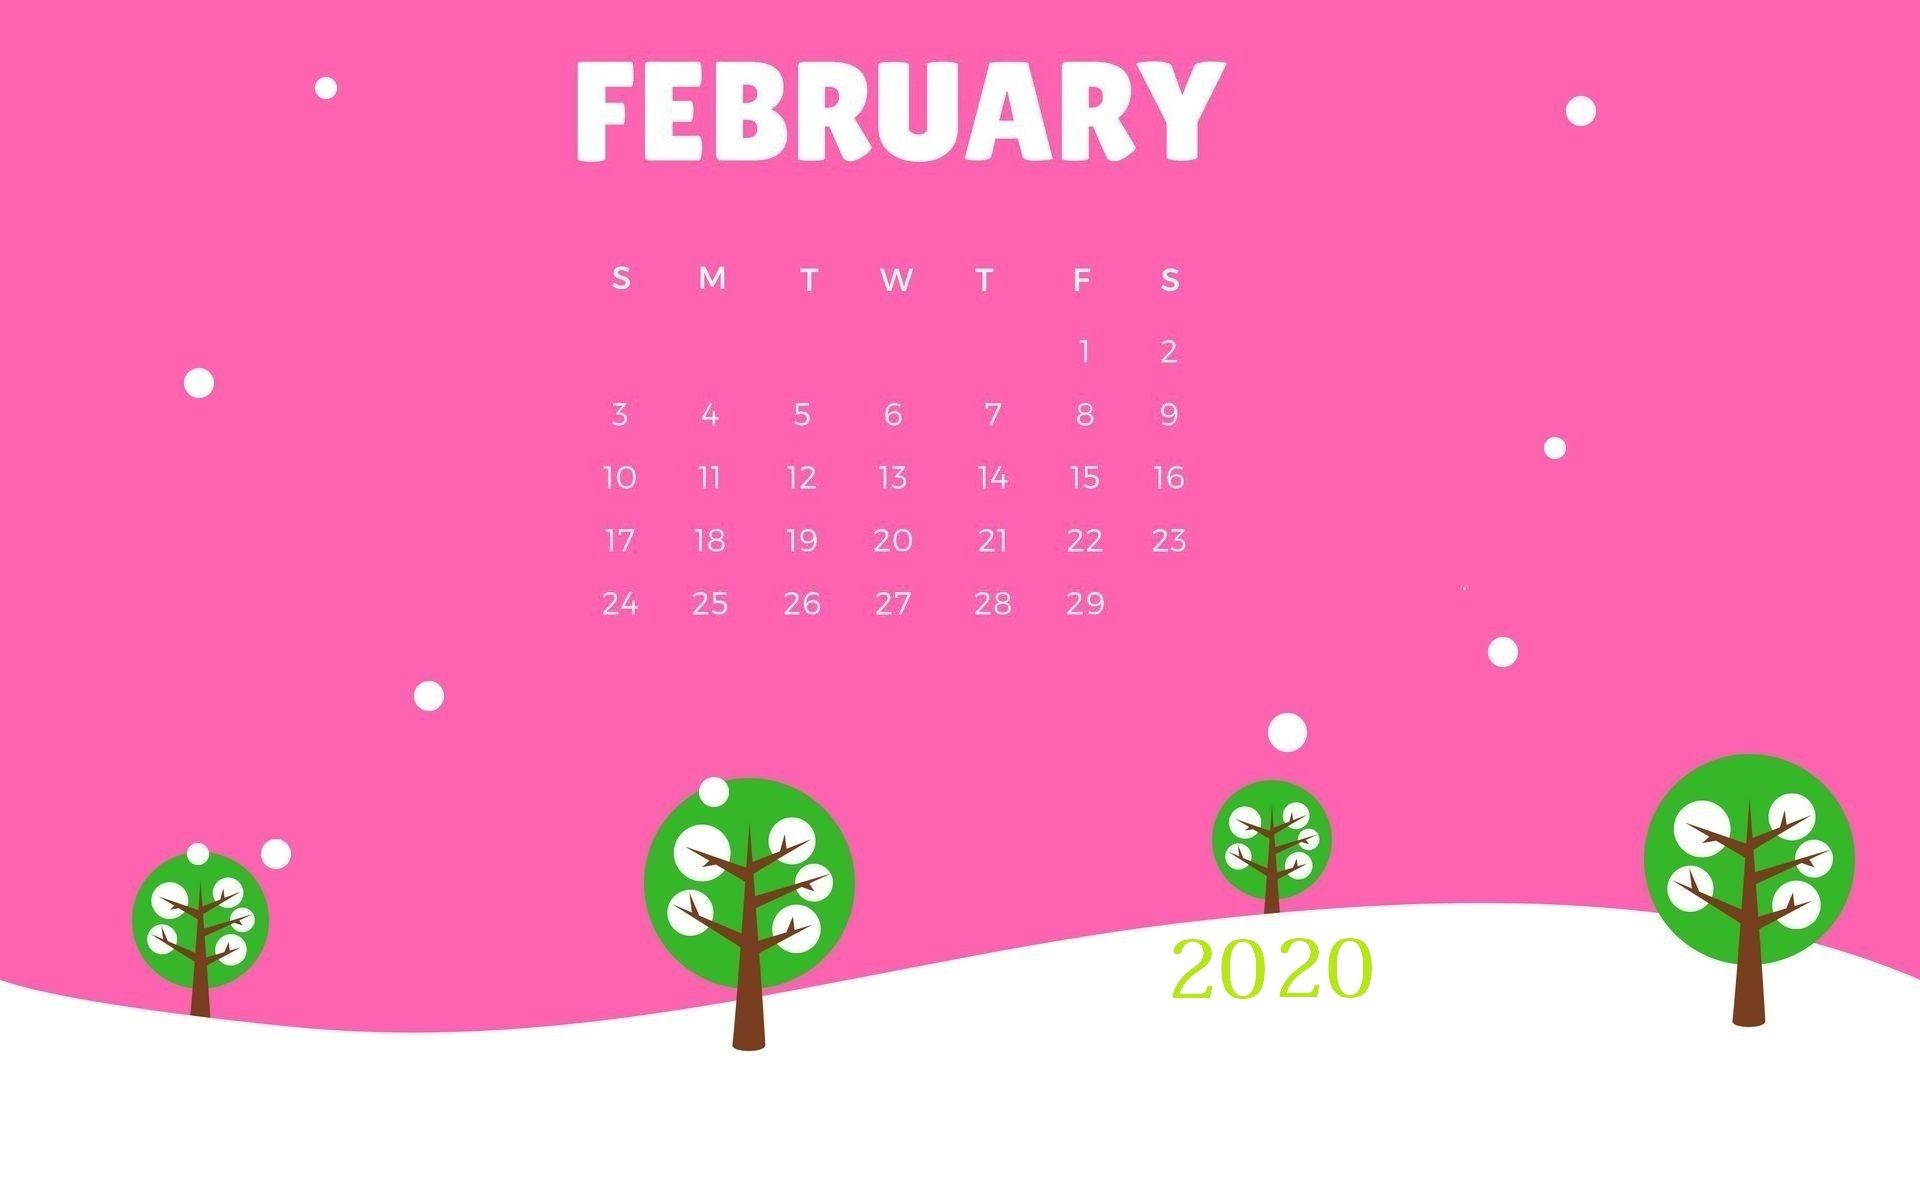 February 2020 Calendar Wallpapers   Top February 2020 1920x1203